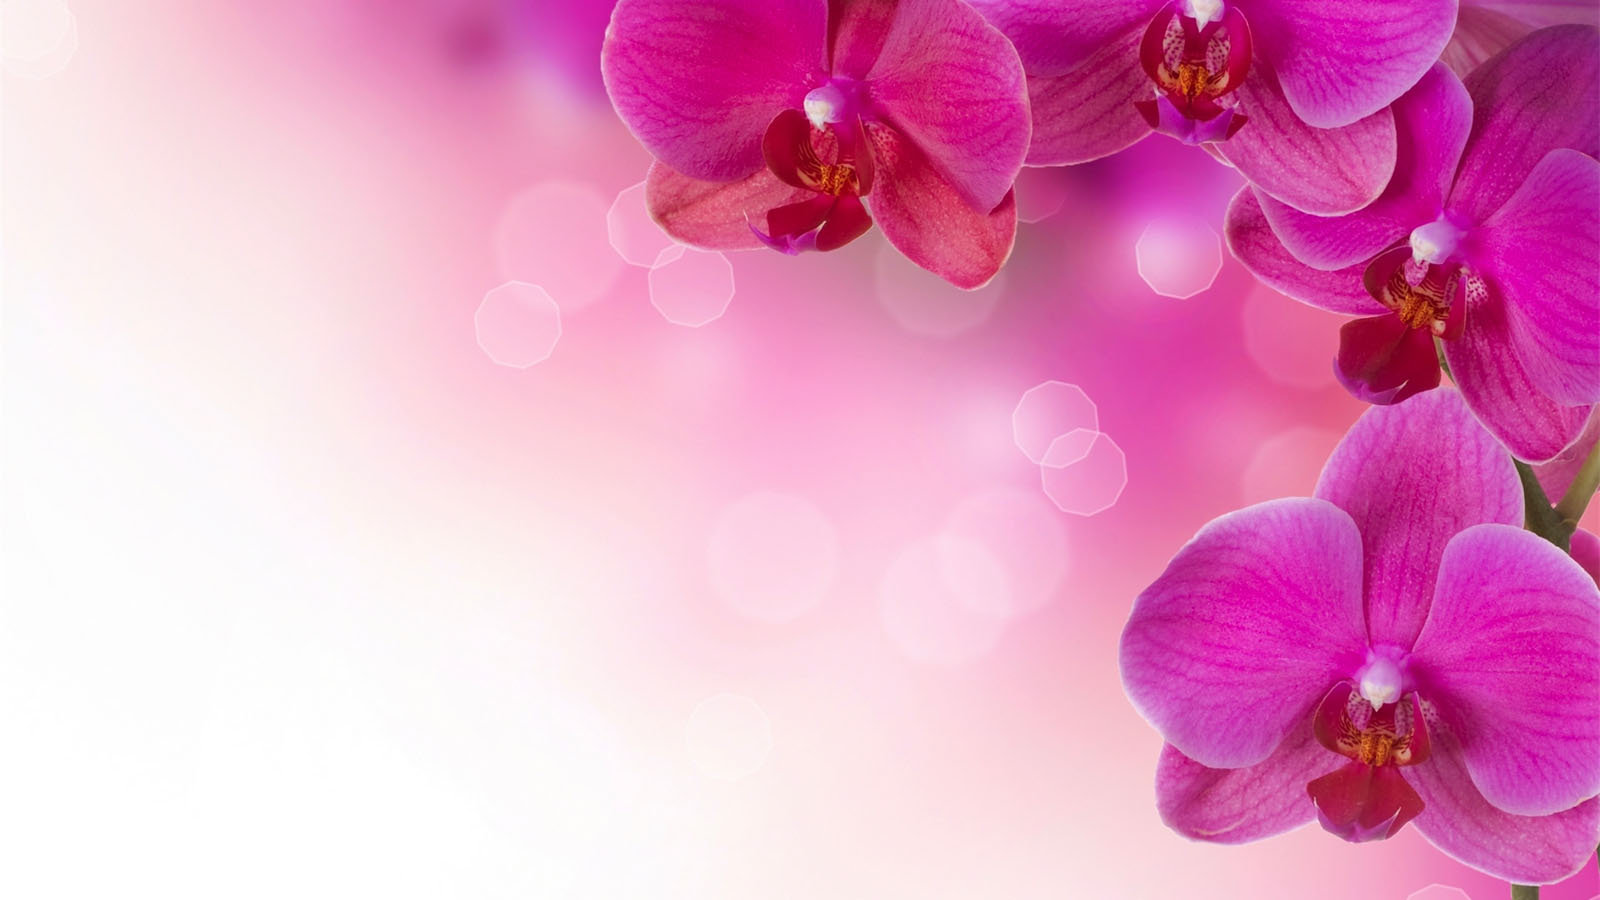 Background images of flowers. Flower backgrounds pink wallpaper